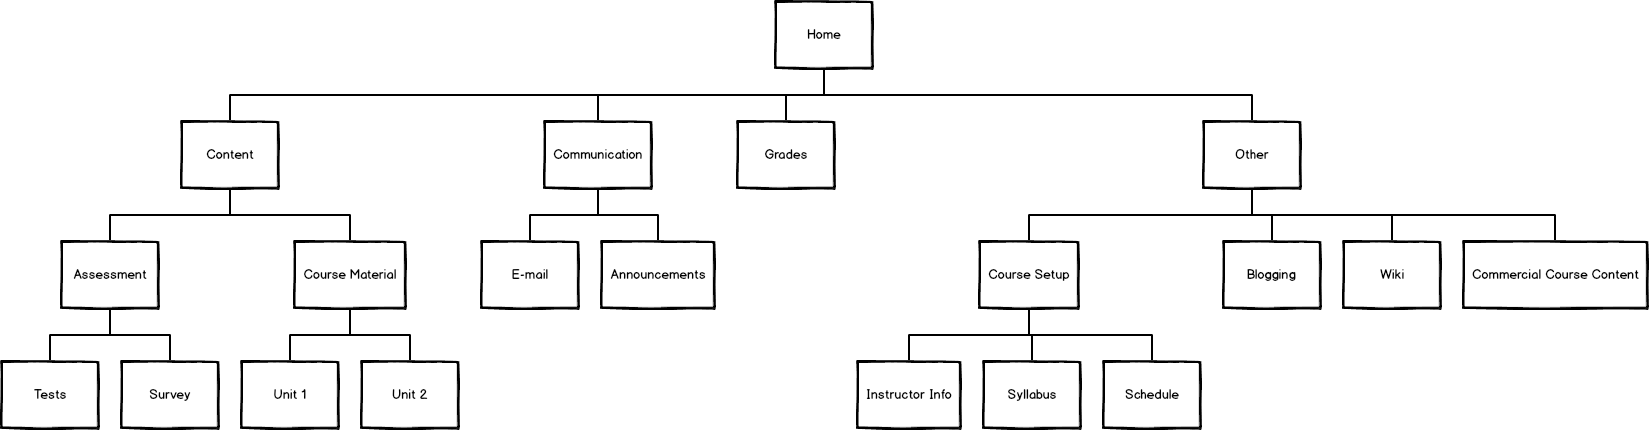 Site_structure for LMS